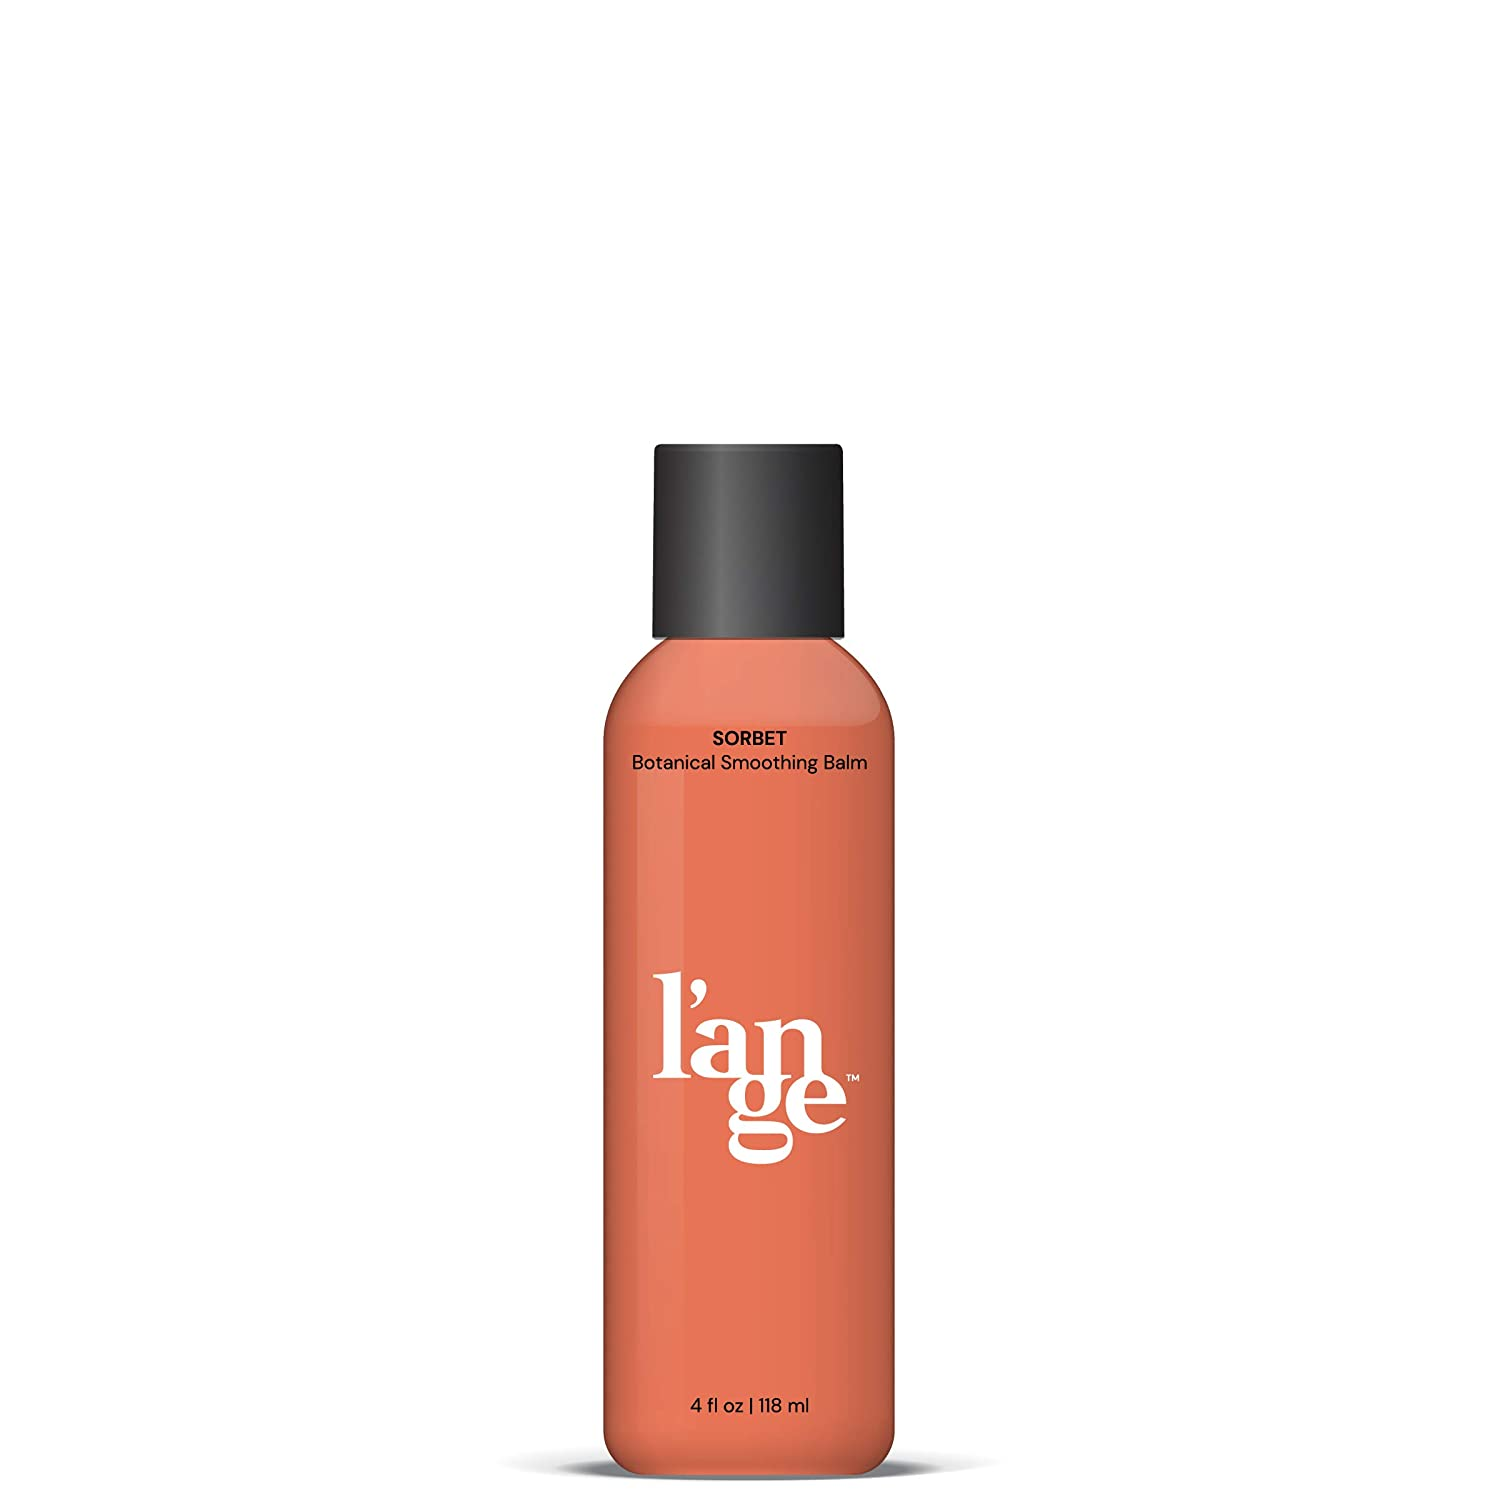 Lange Hair Products